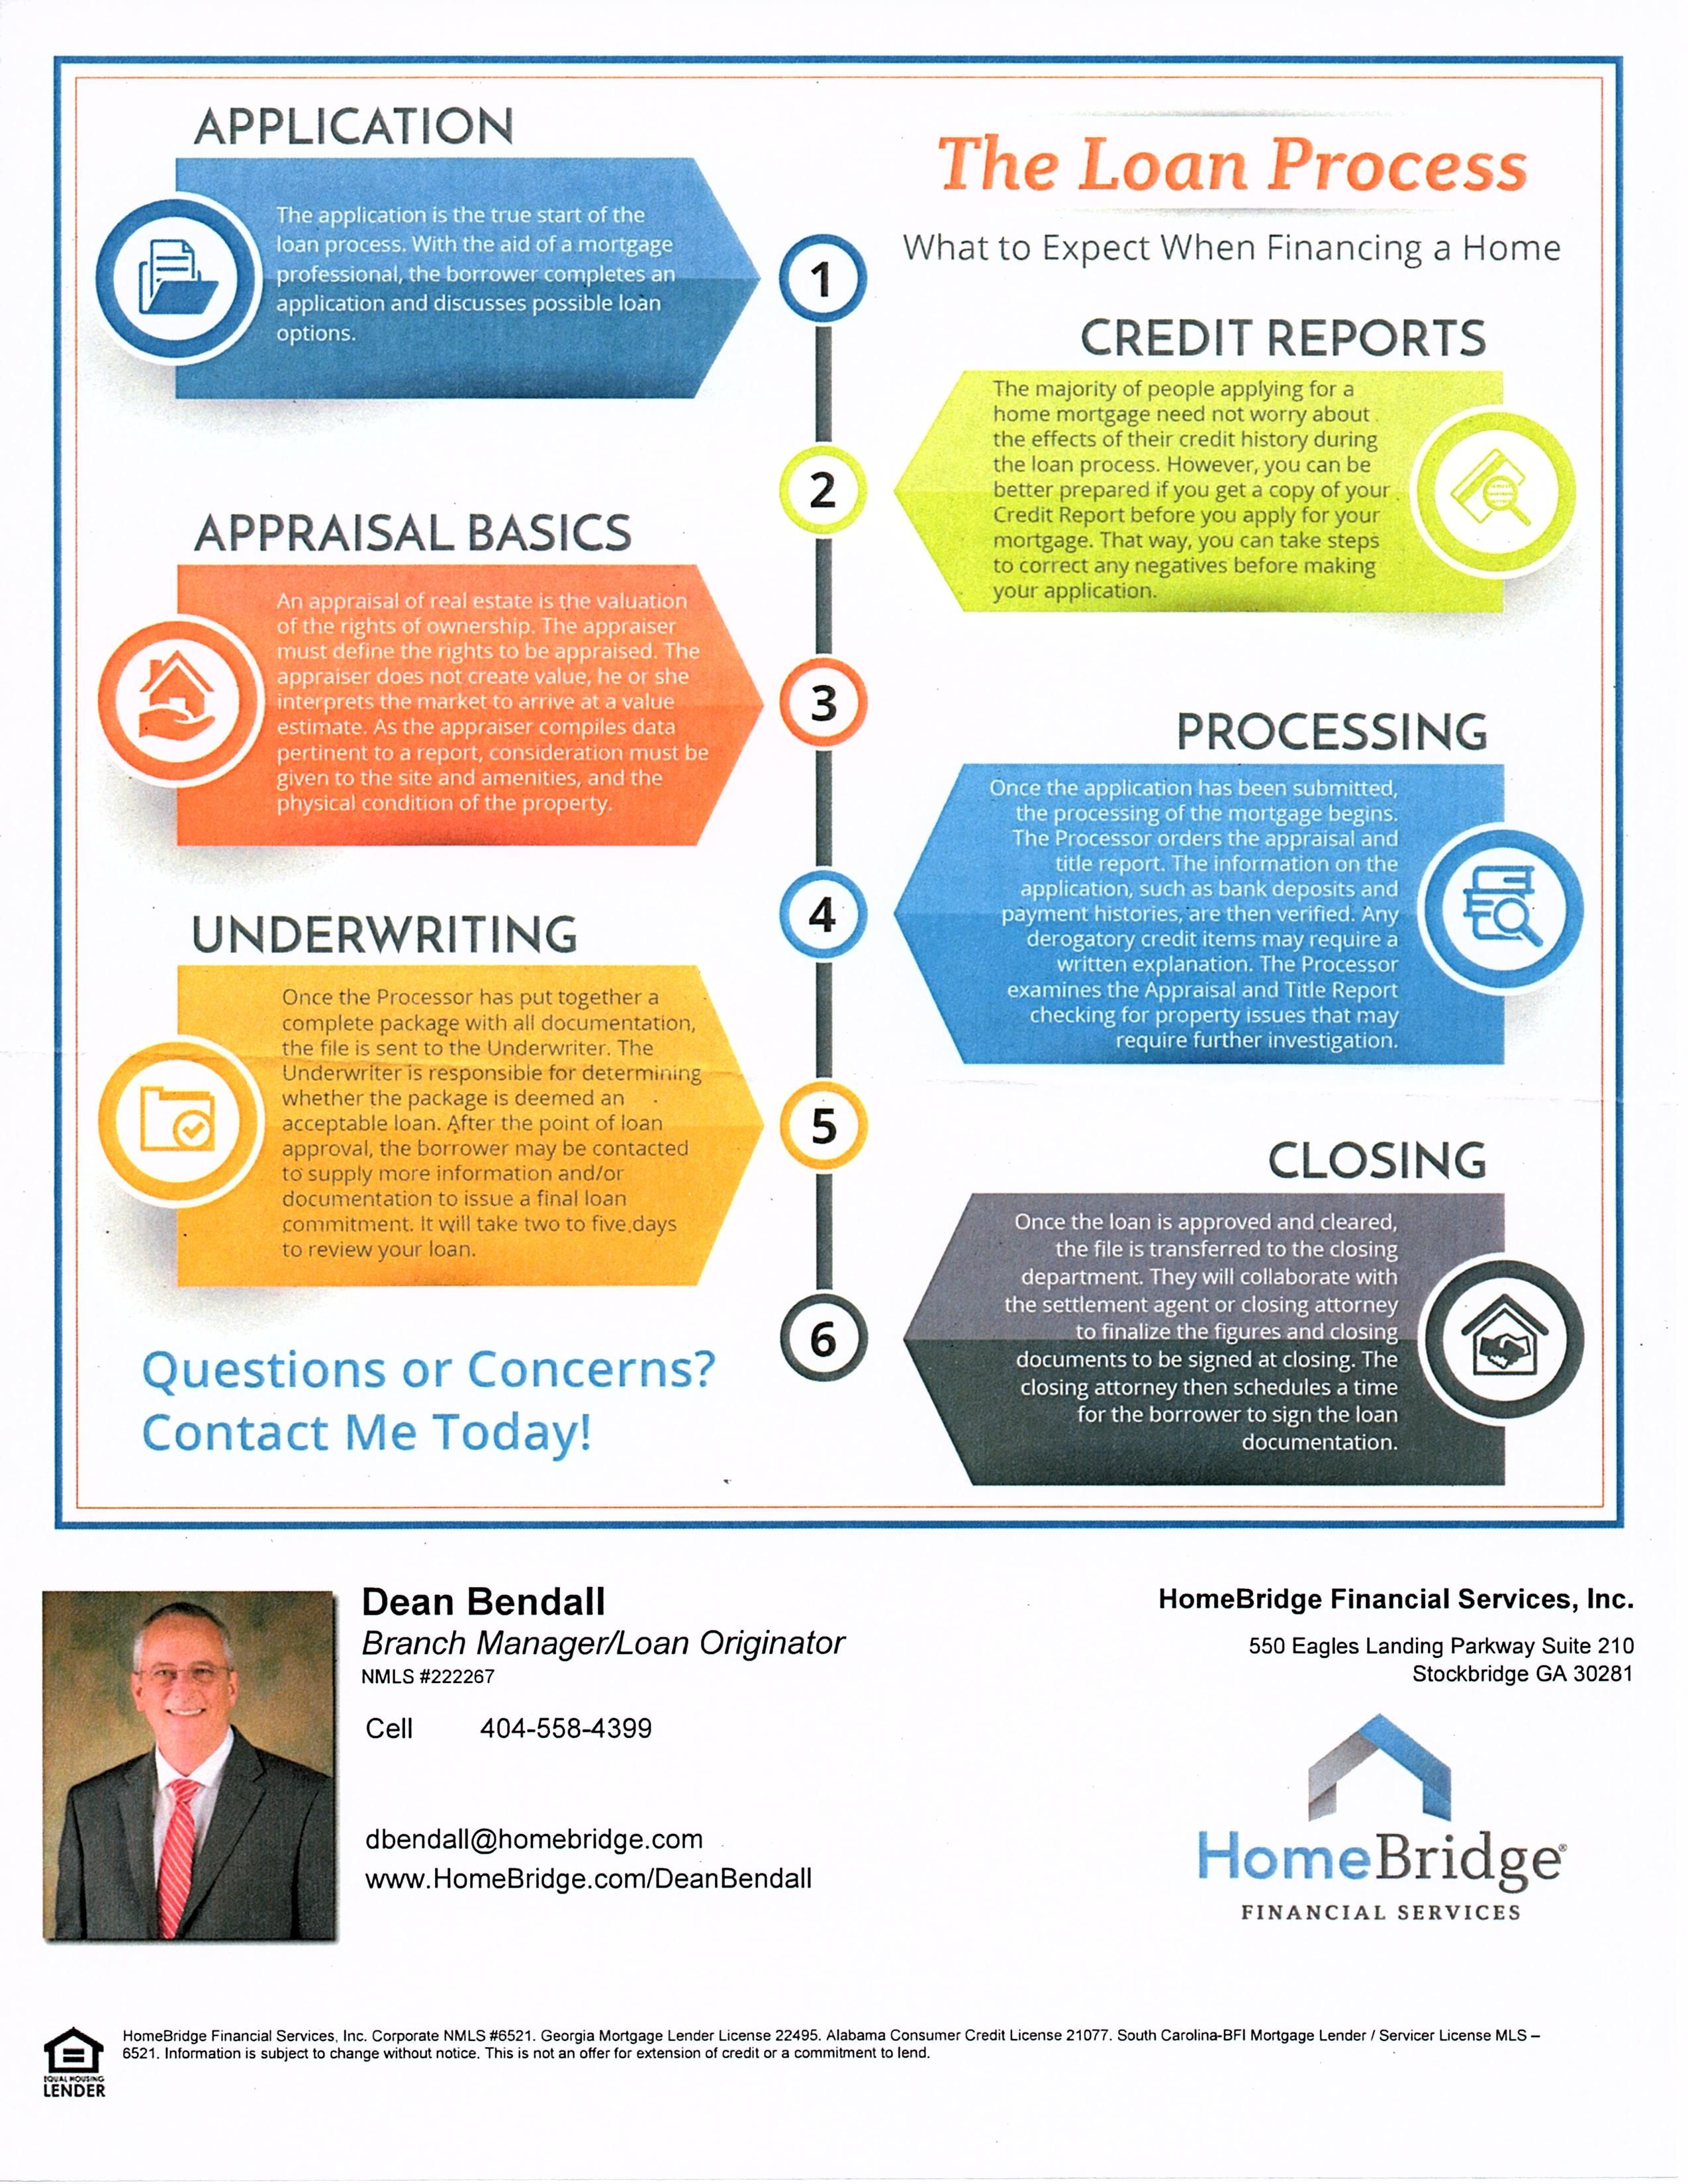 The Loan Process 6 Steps Homebridge Financial Services Inc